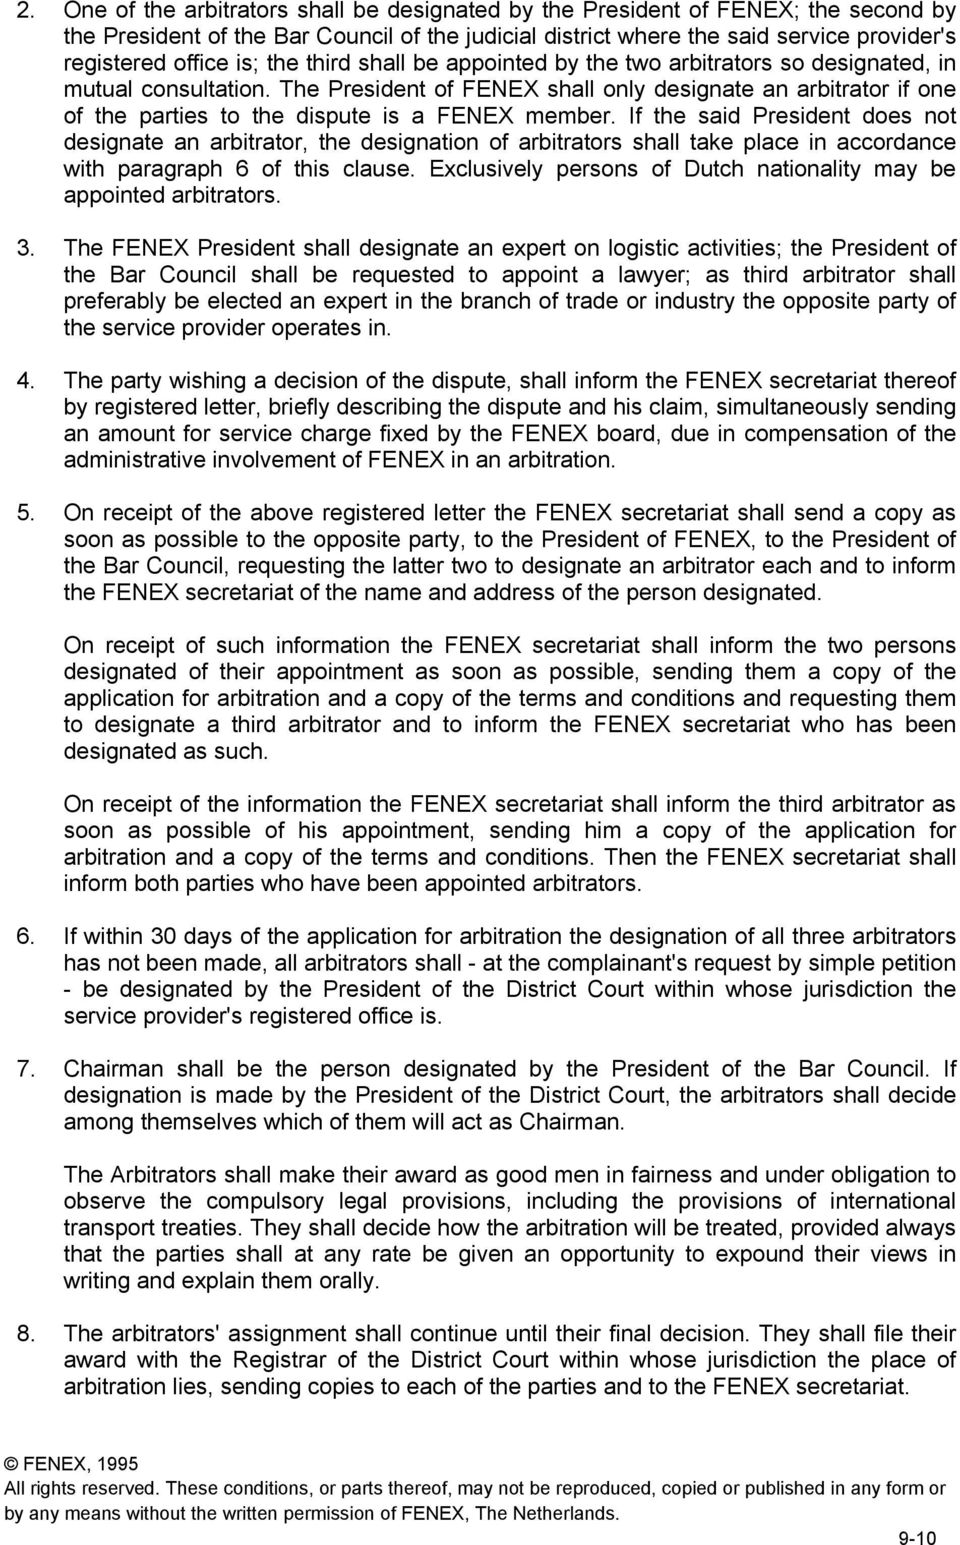 The President of FENEX shall only designate an arbitrator if one of the parties to the dispute is a FENEX member.